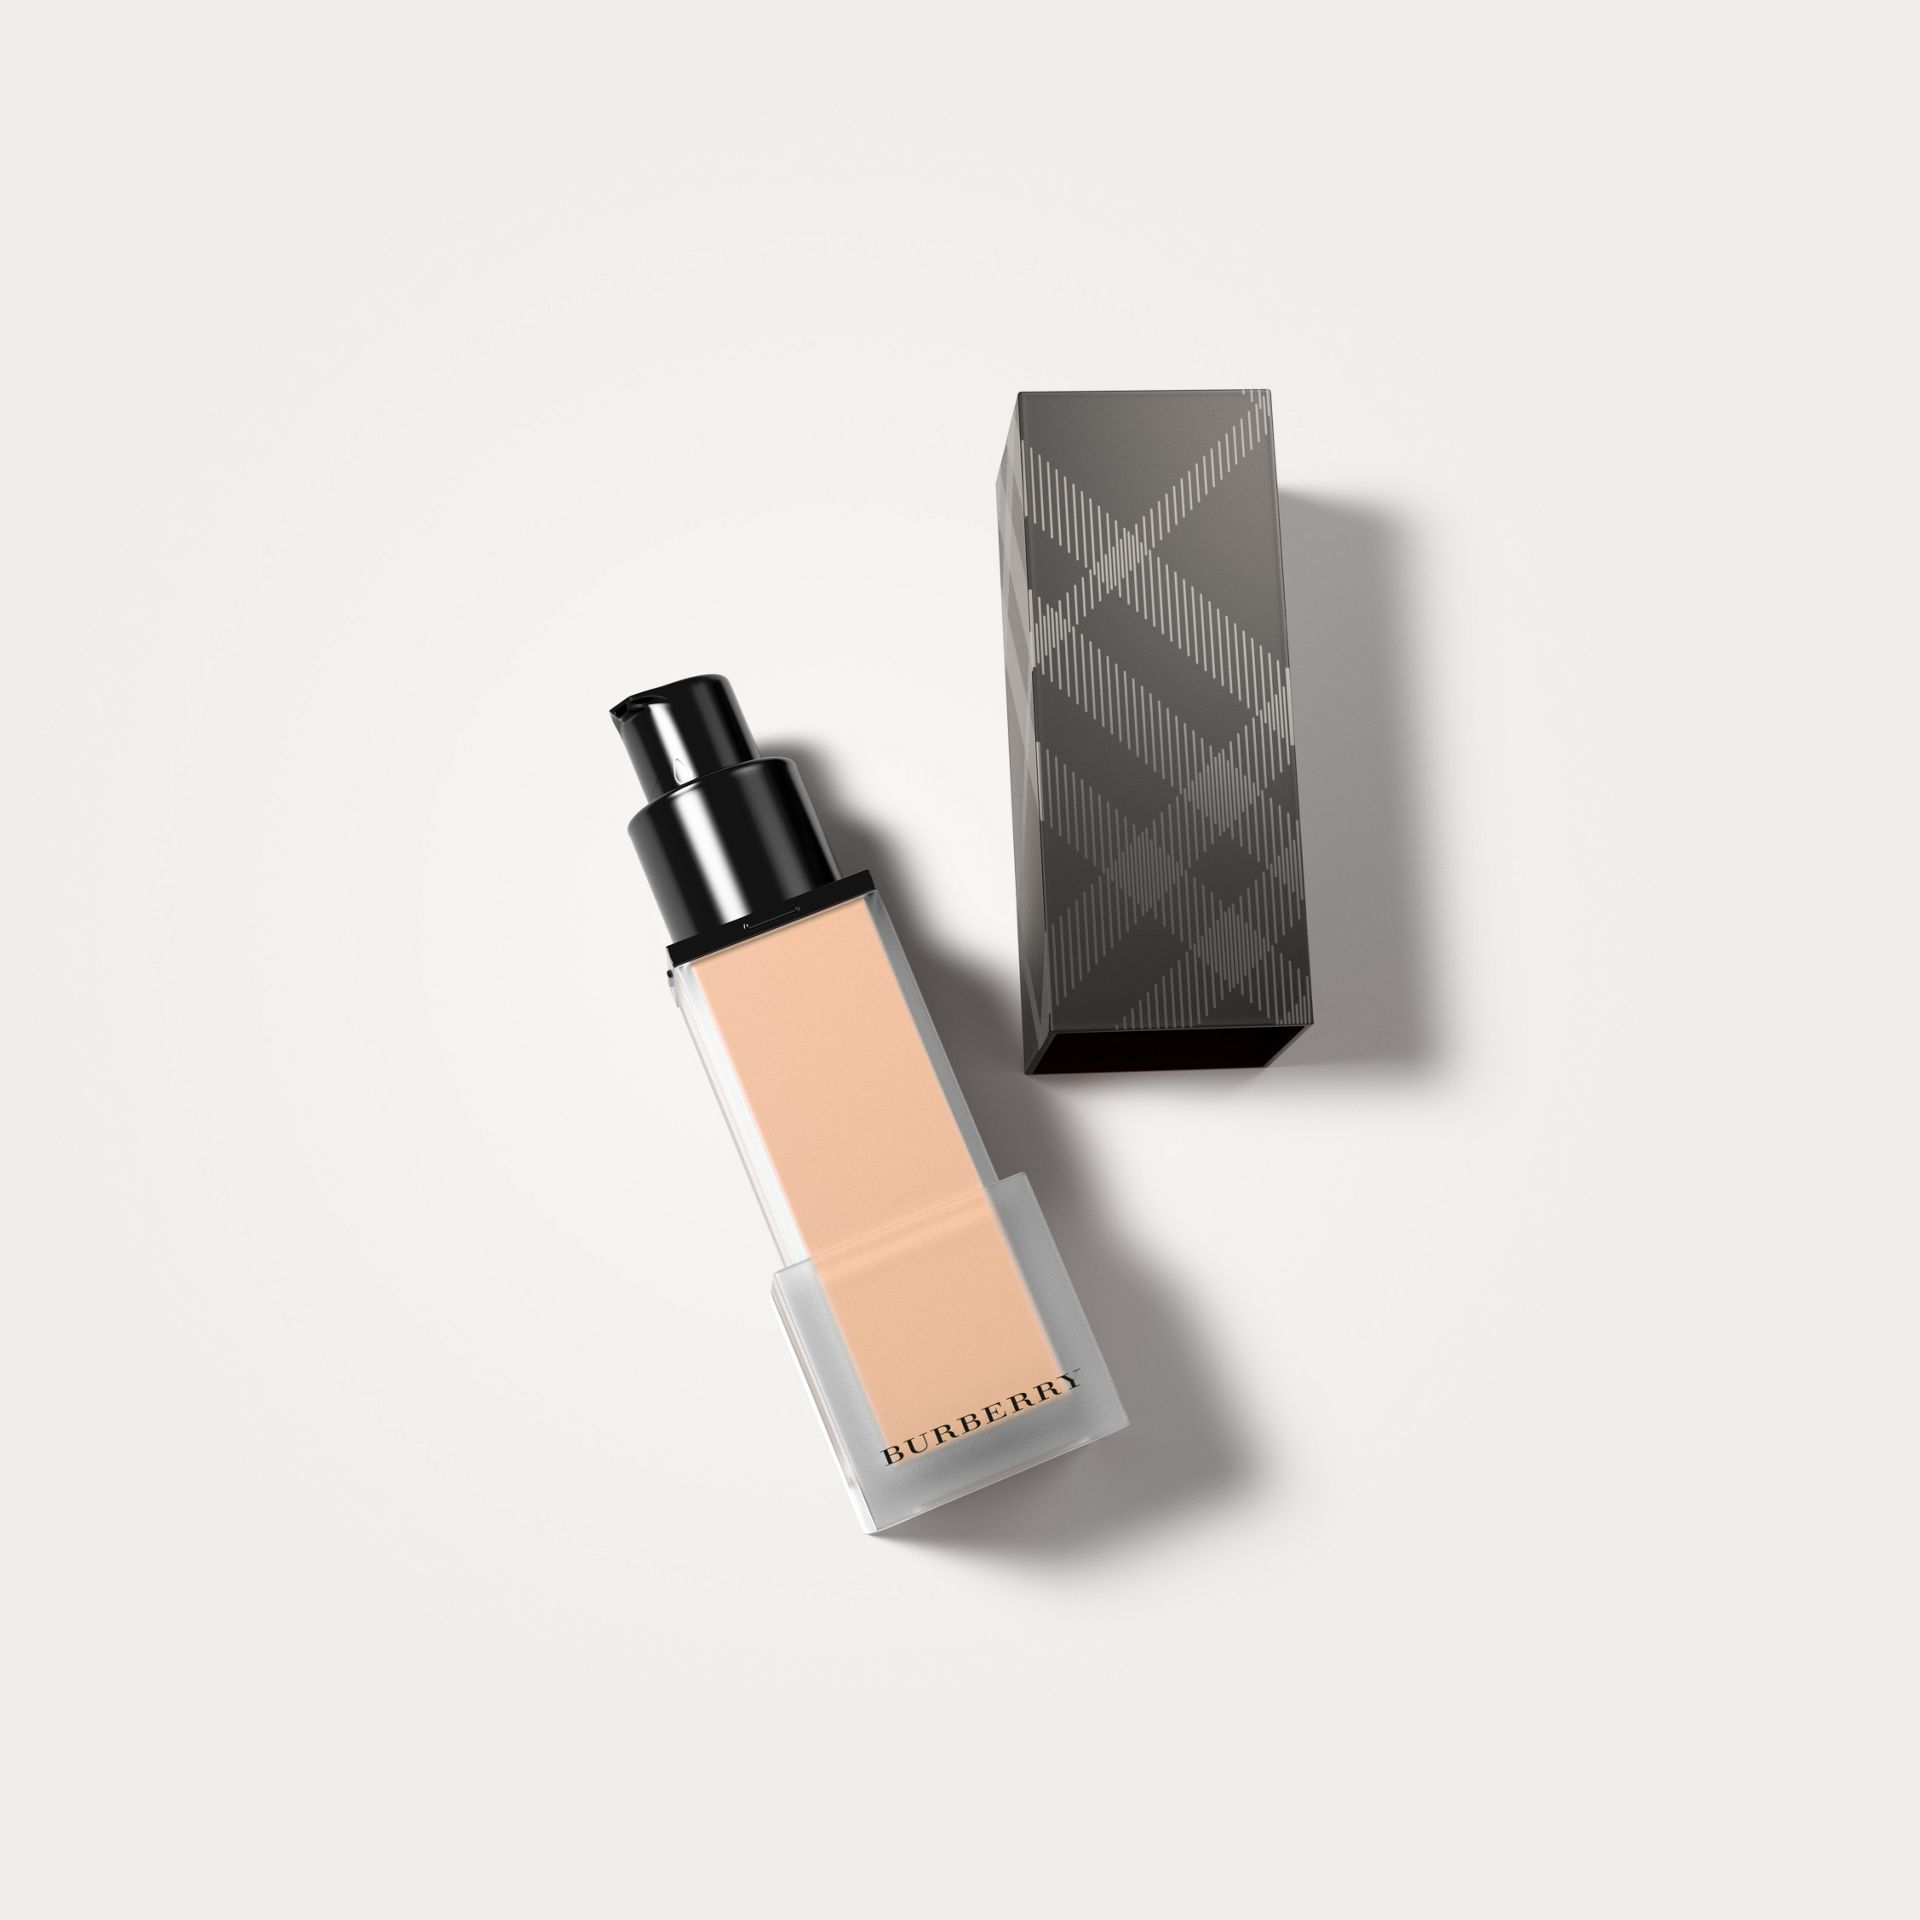 Burberry Cashmere Sunscreen SPF 20 – Warm Nude No.34 - gallery image 1